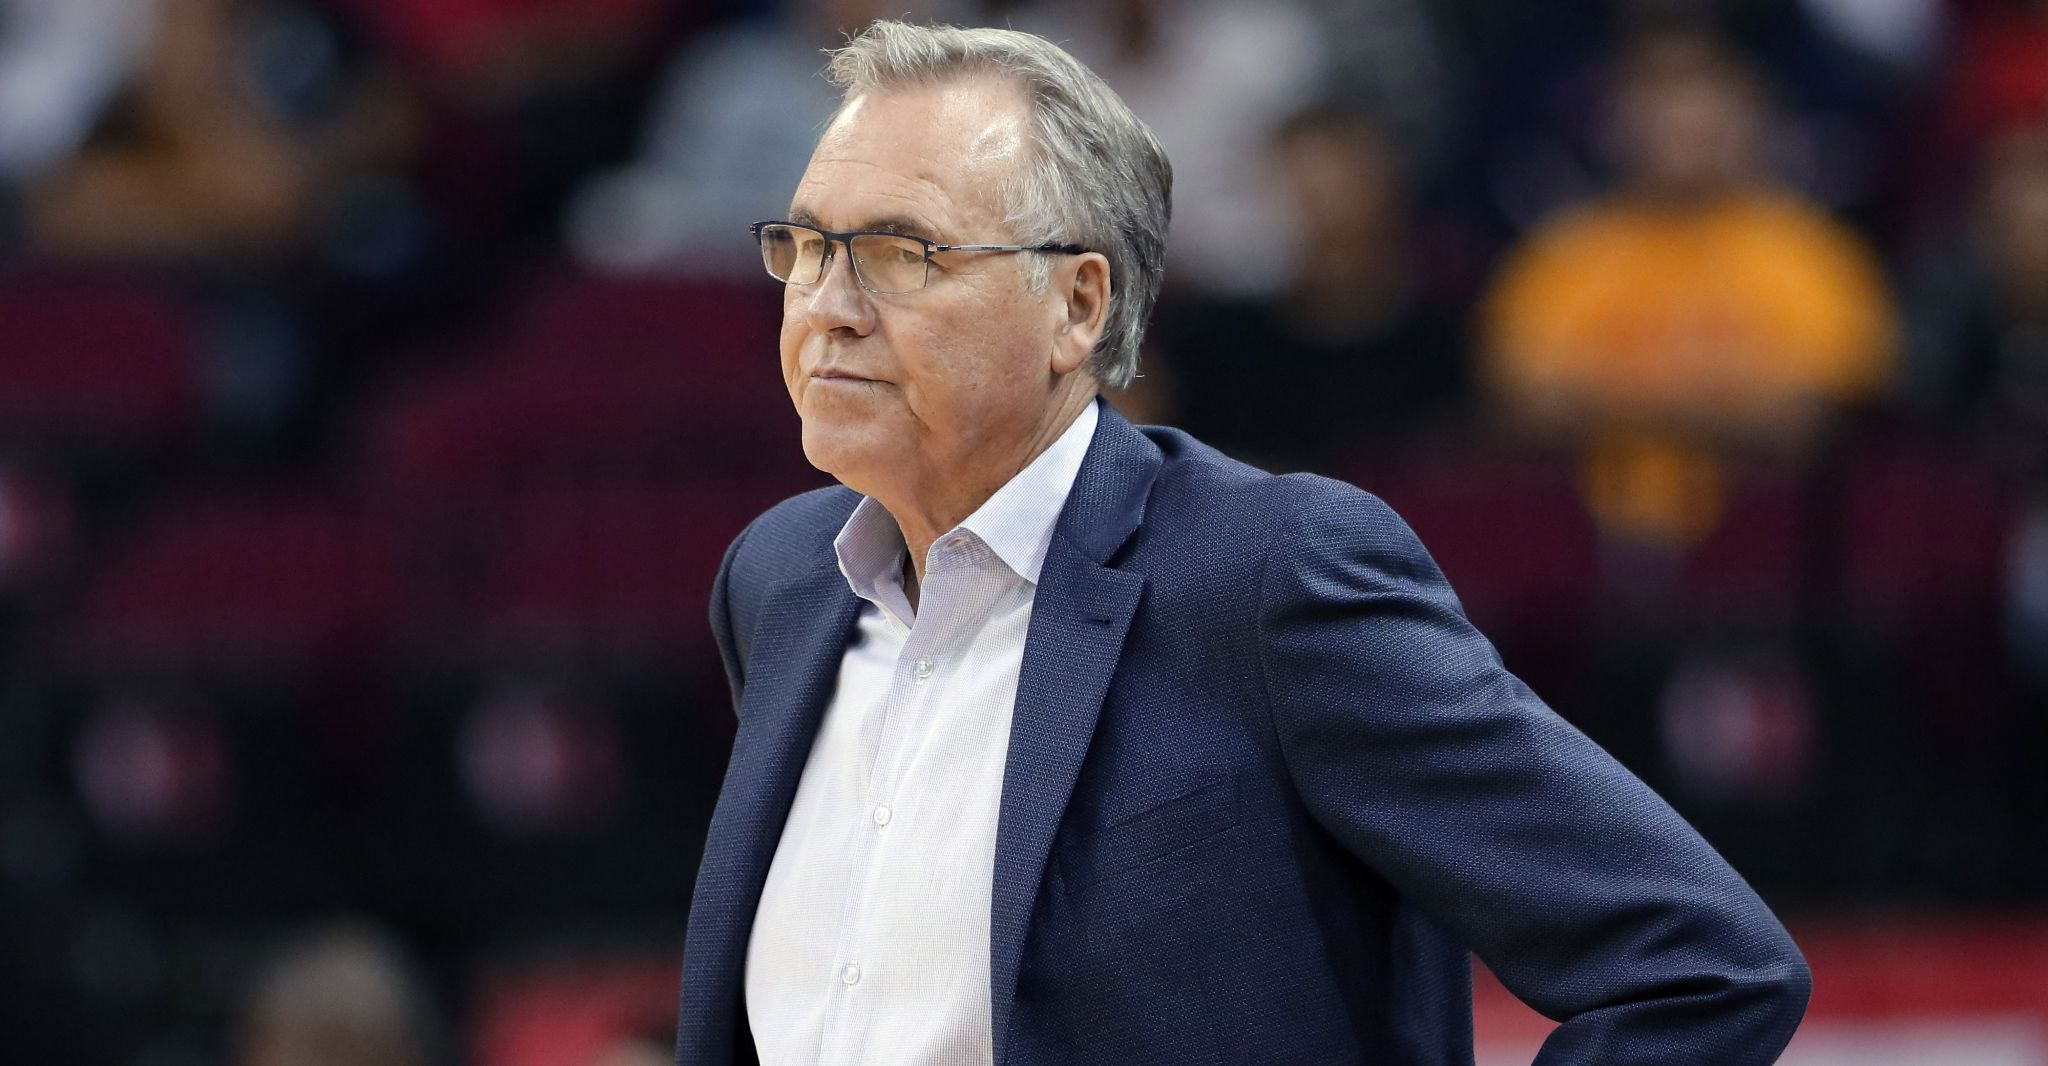 Rockets' Mike D'Antoni on latest Knicks firing: 'Something' is missing